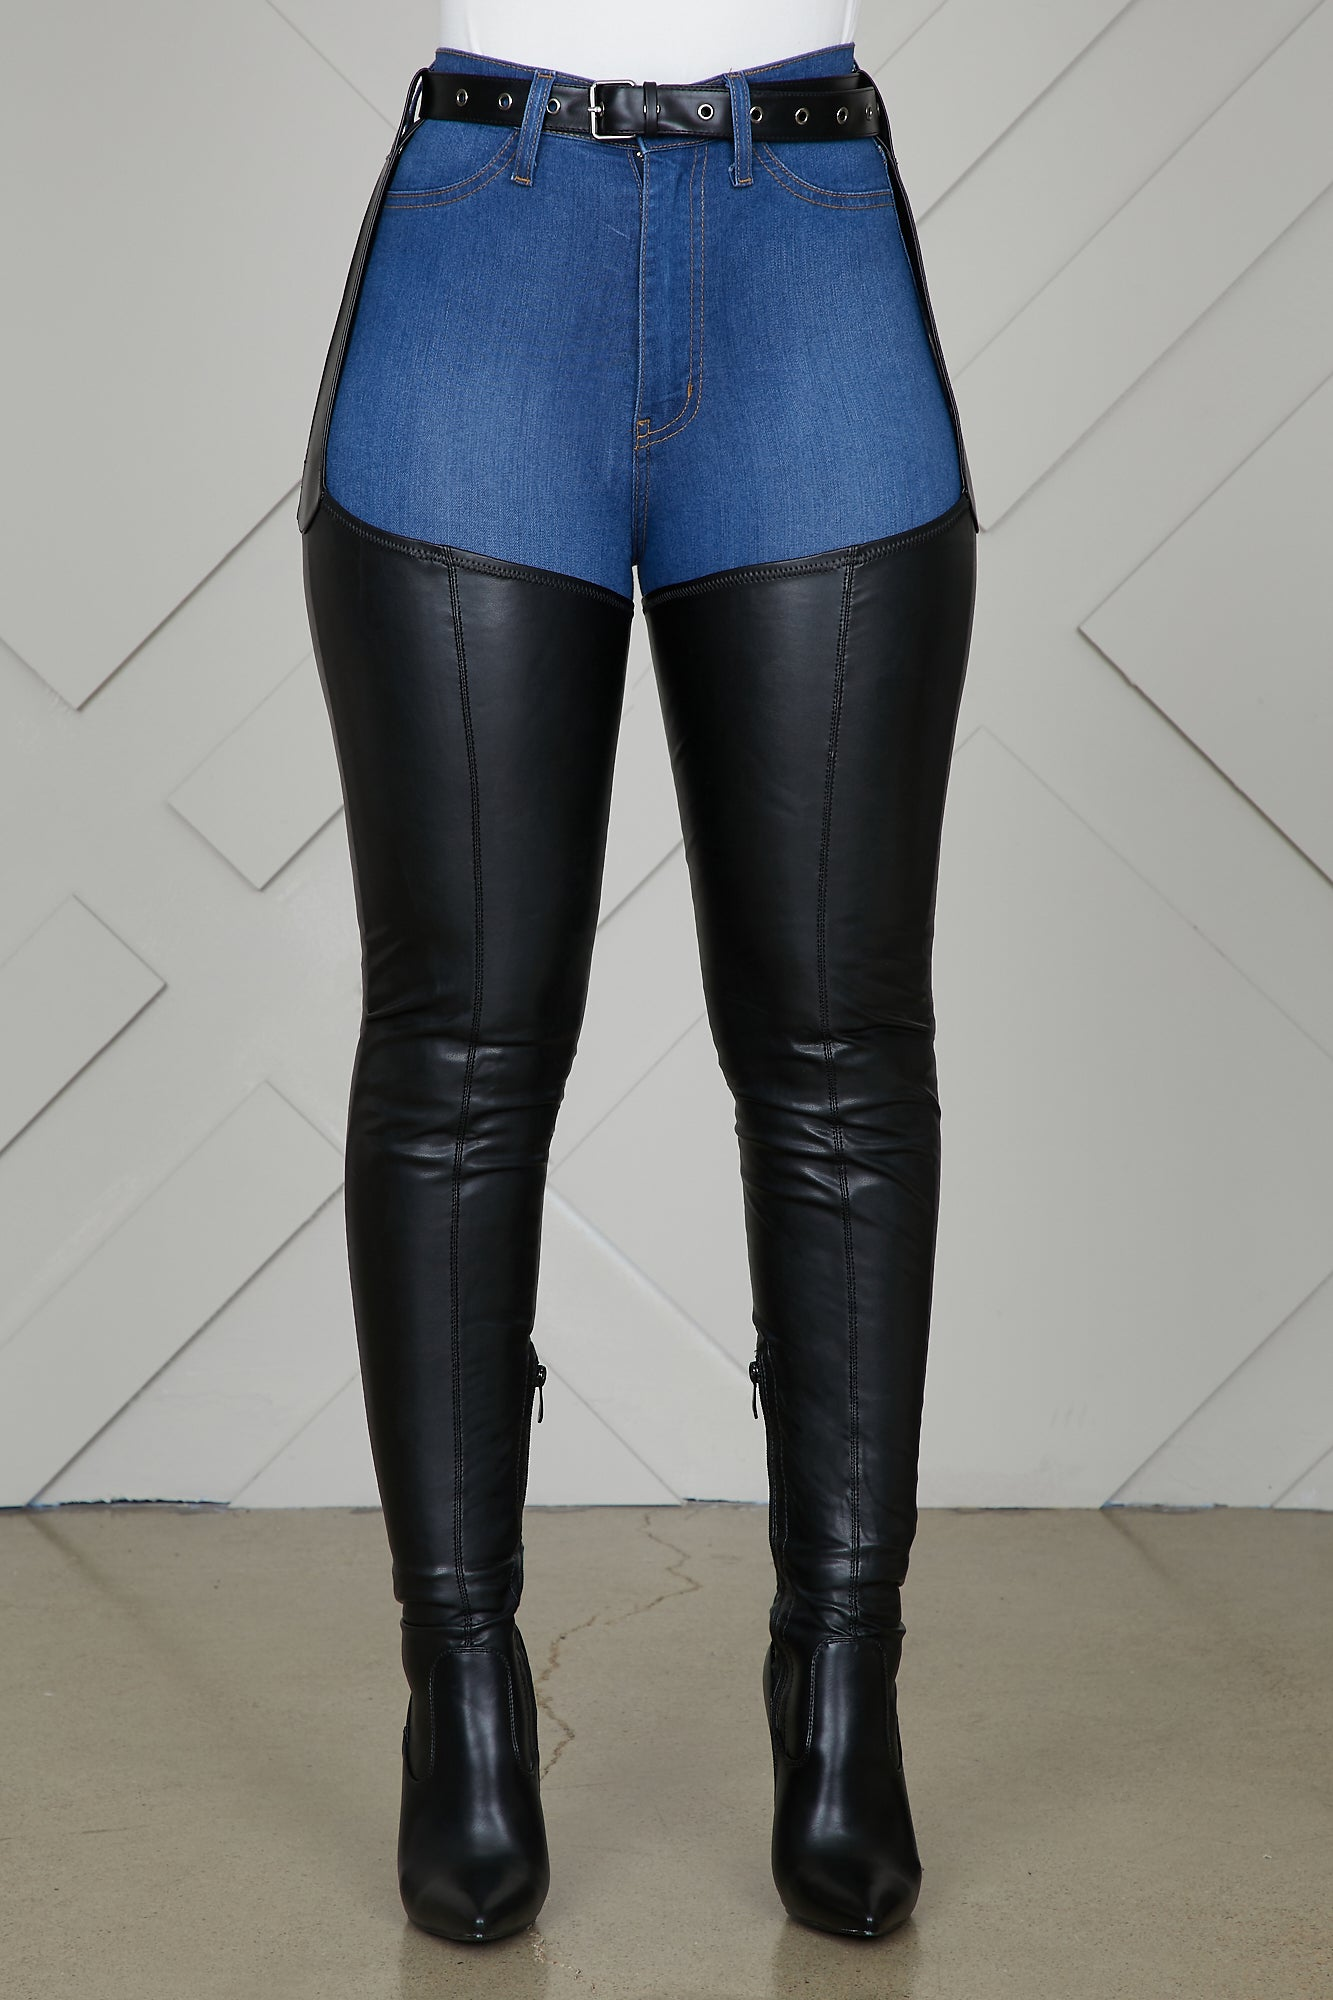 Thigh High Boots For Plus Size Legs